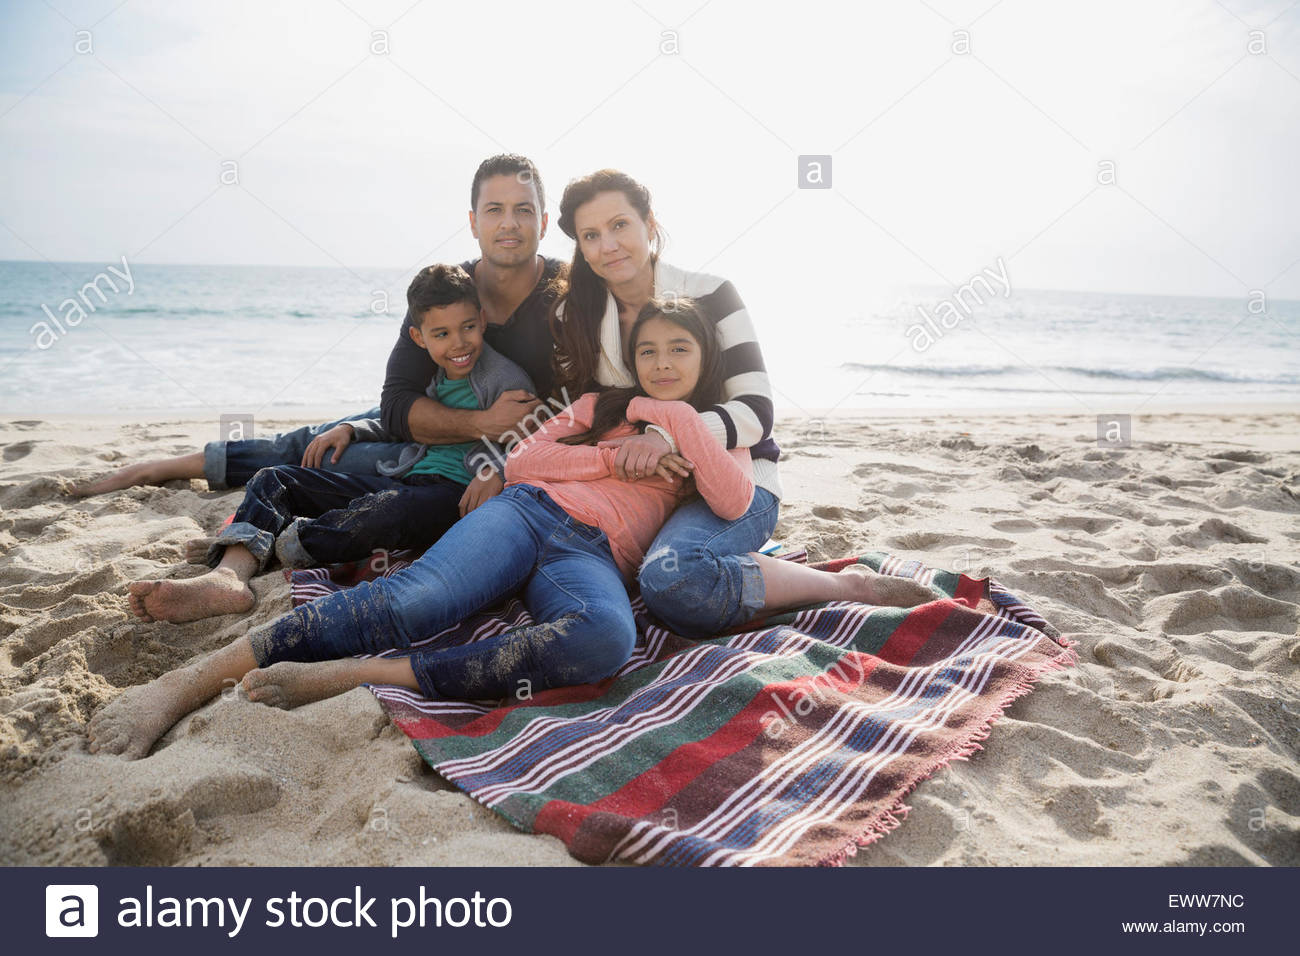 Portrait family relaxing on blanket on sunny beach - Stock Image